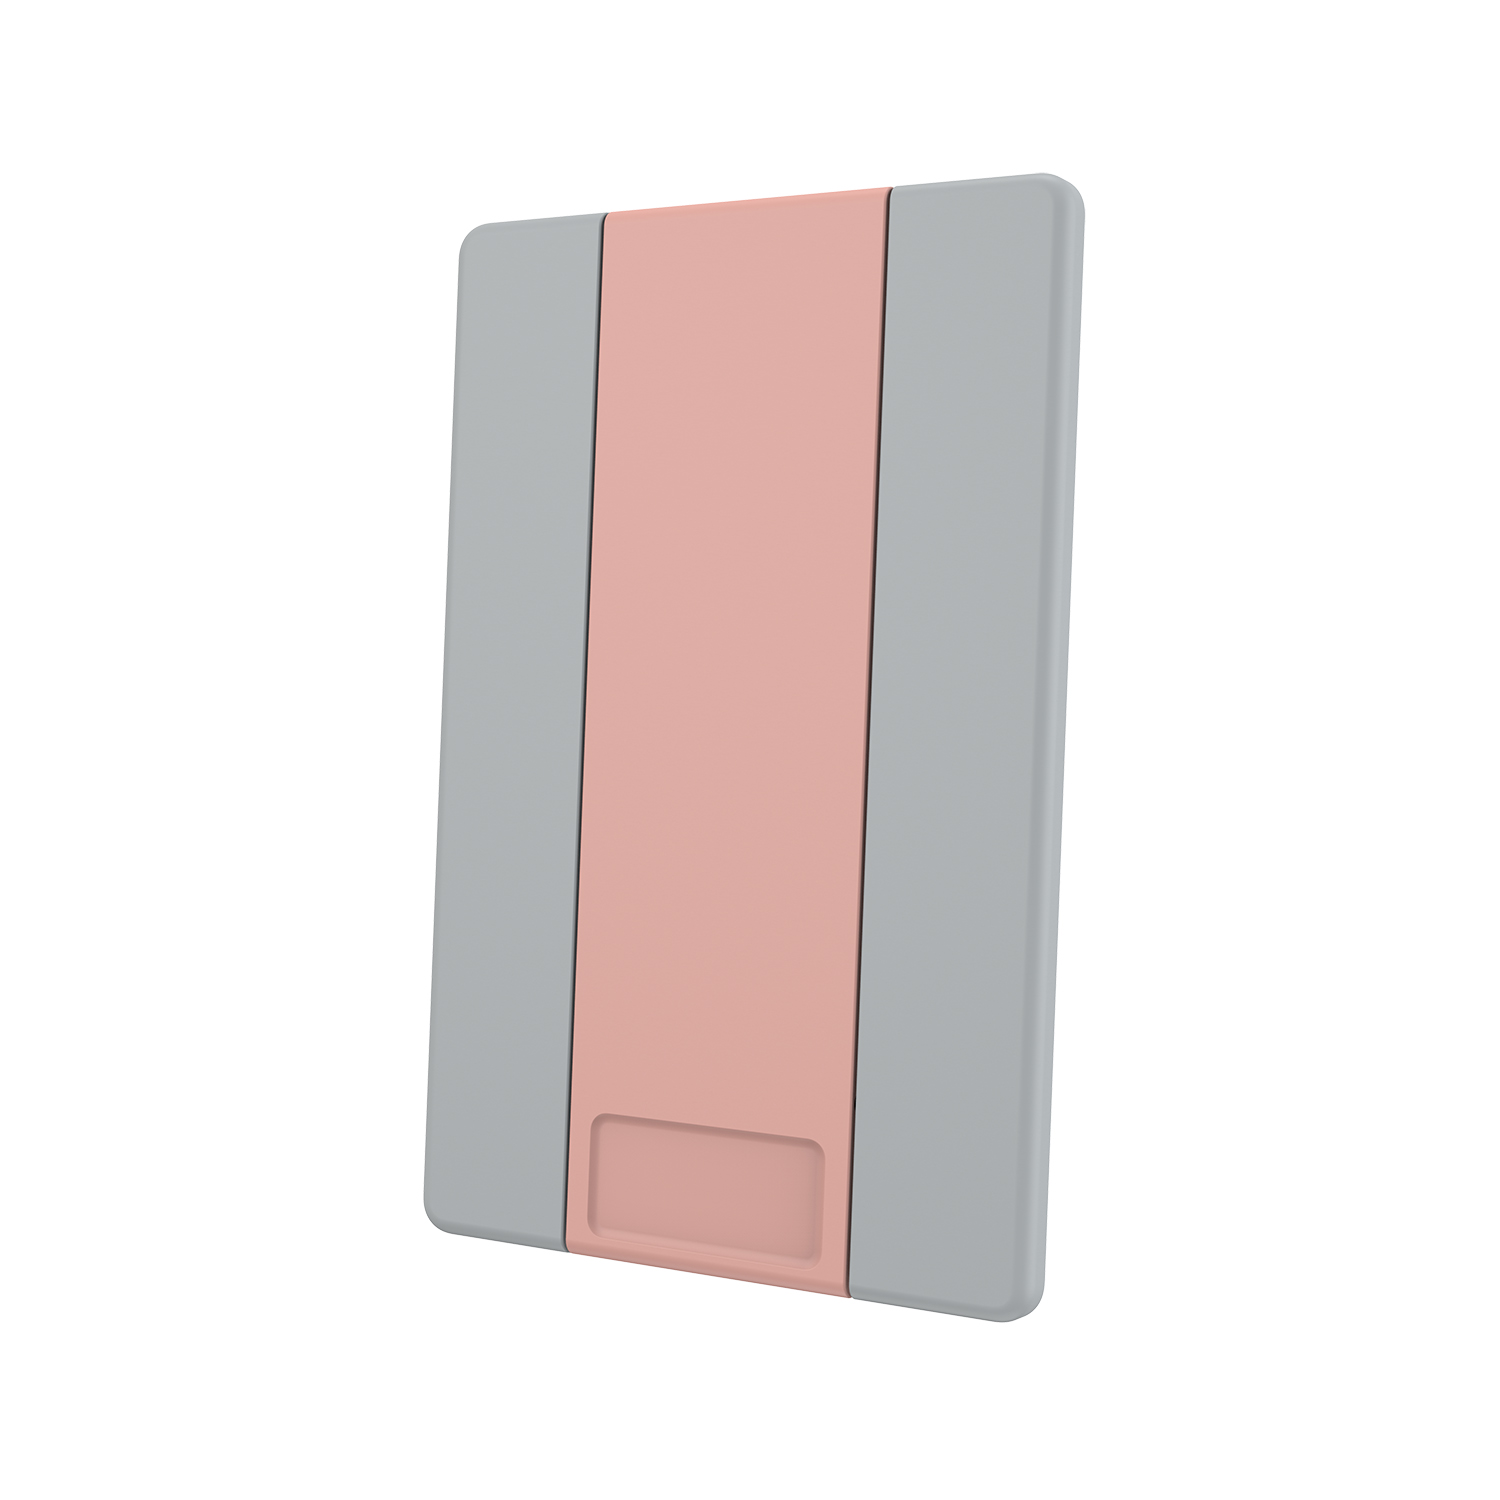 Compare prices for GrabTab Dolphin Grey/Macaroon Peach